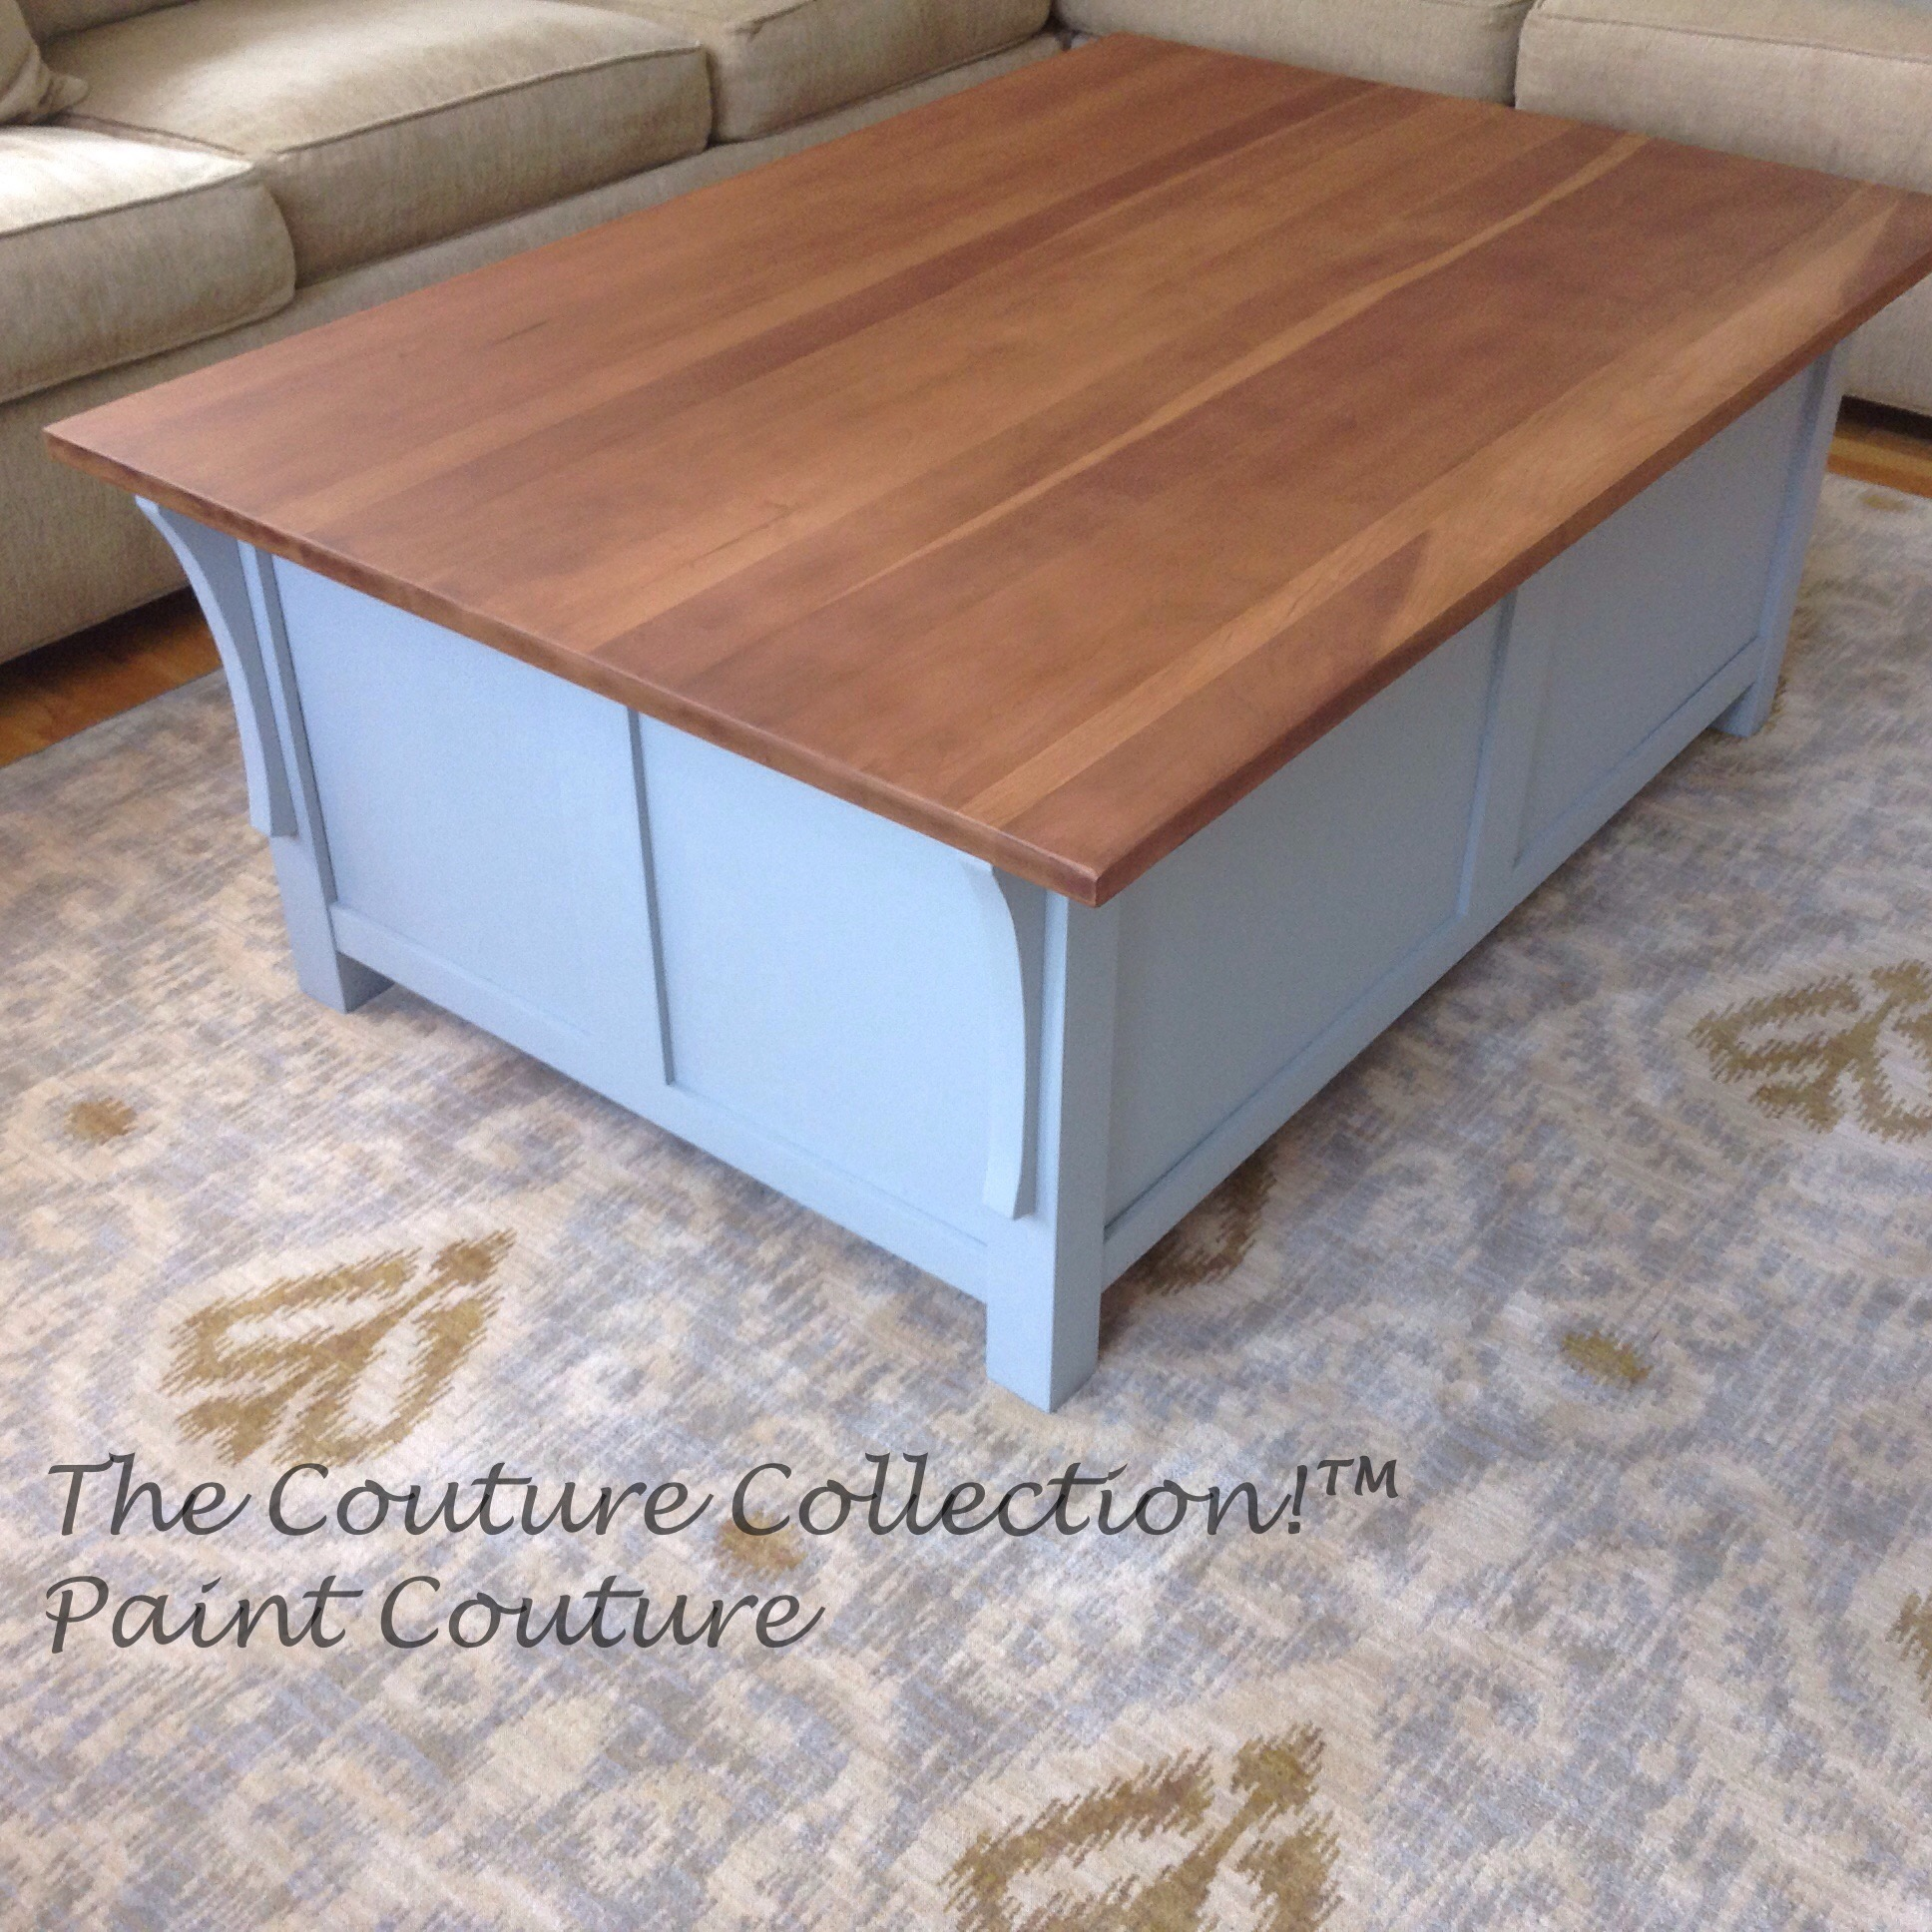 Polished Coffee Table Be es Dead Flat